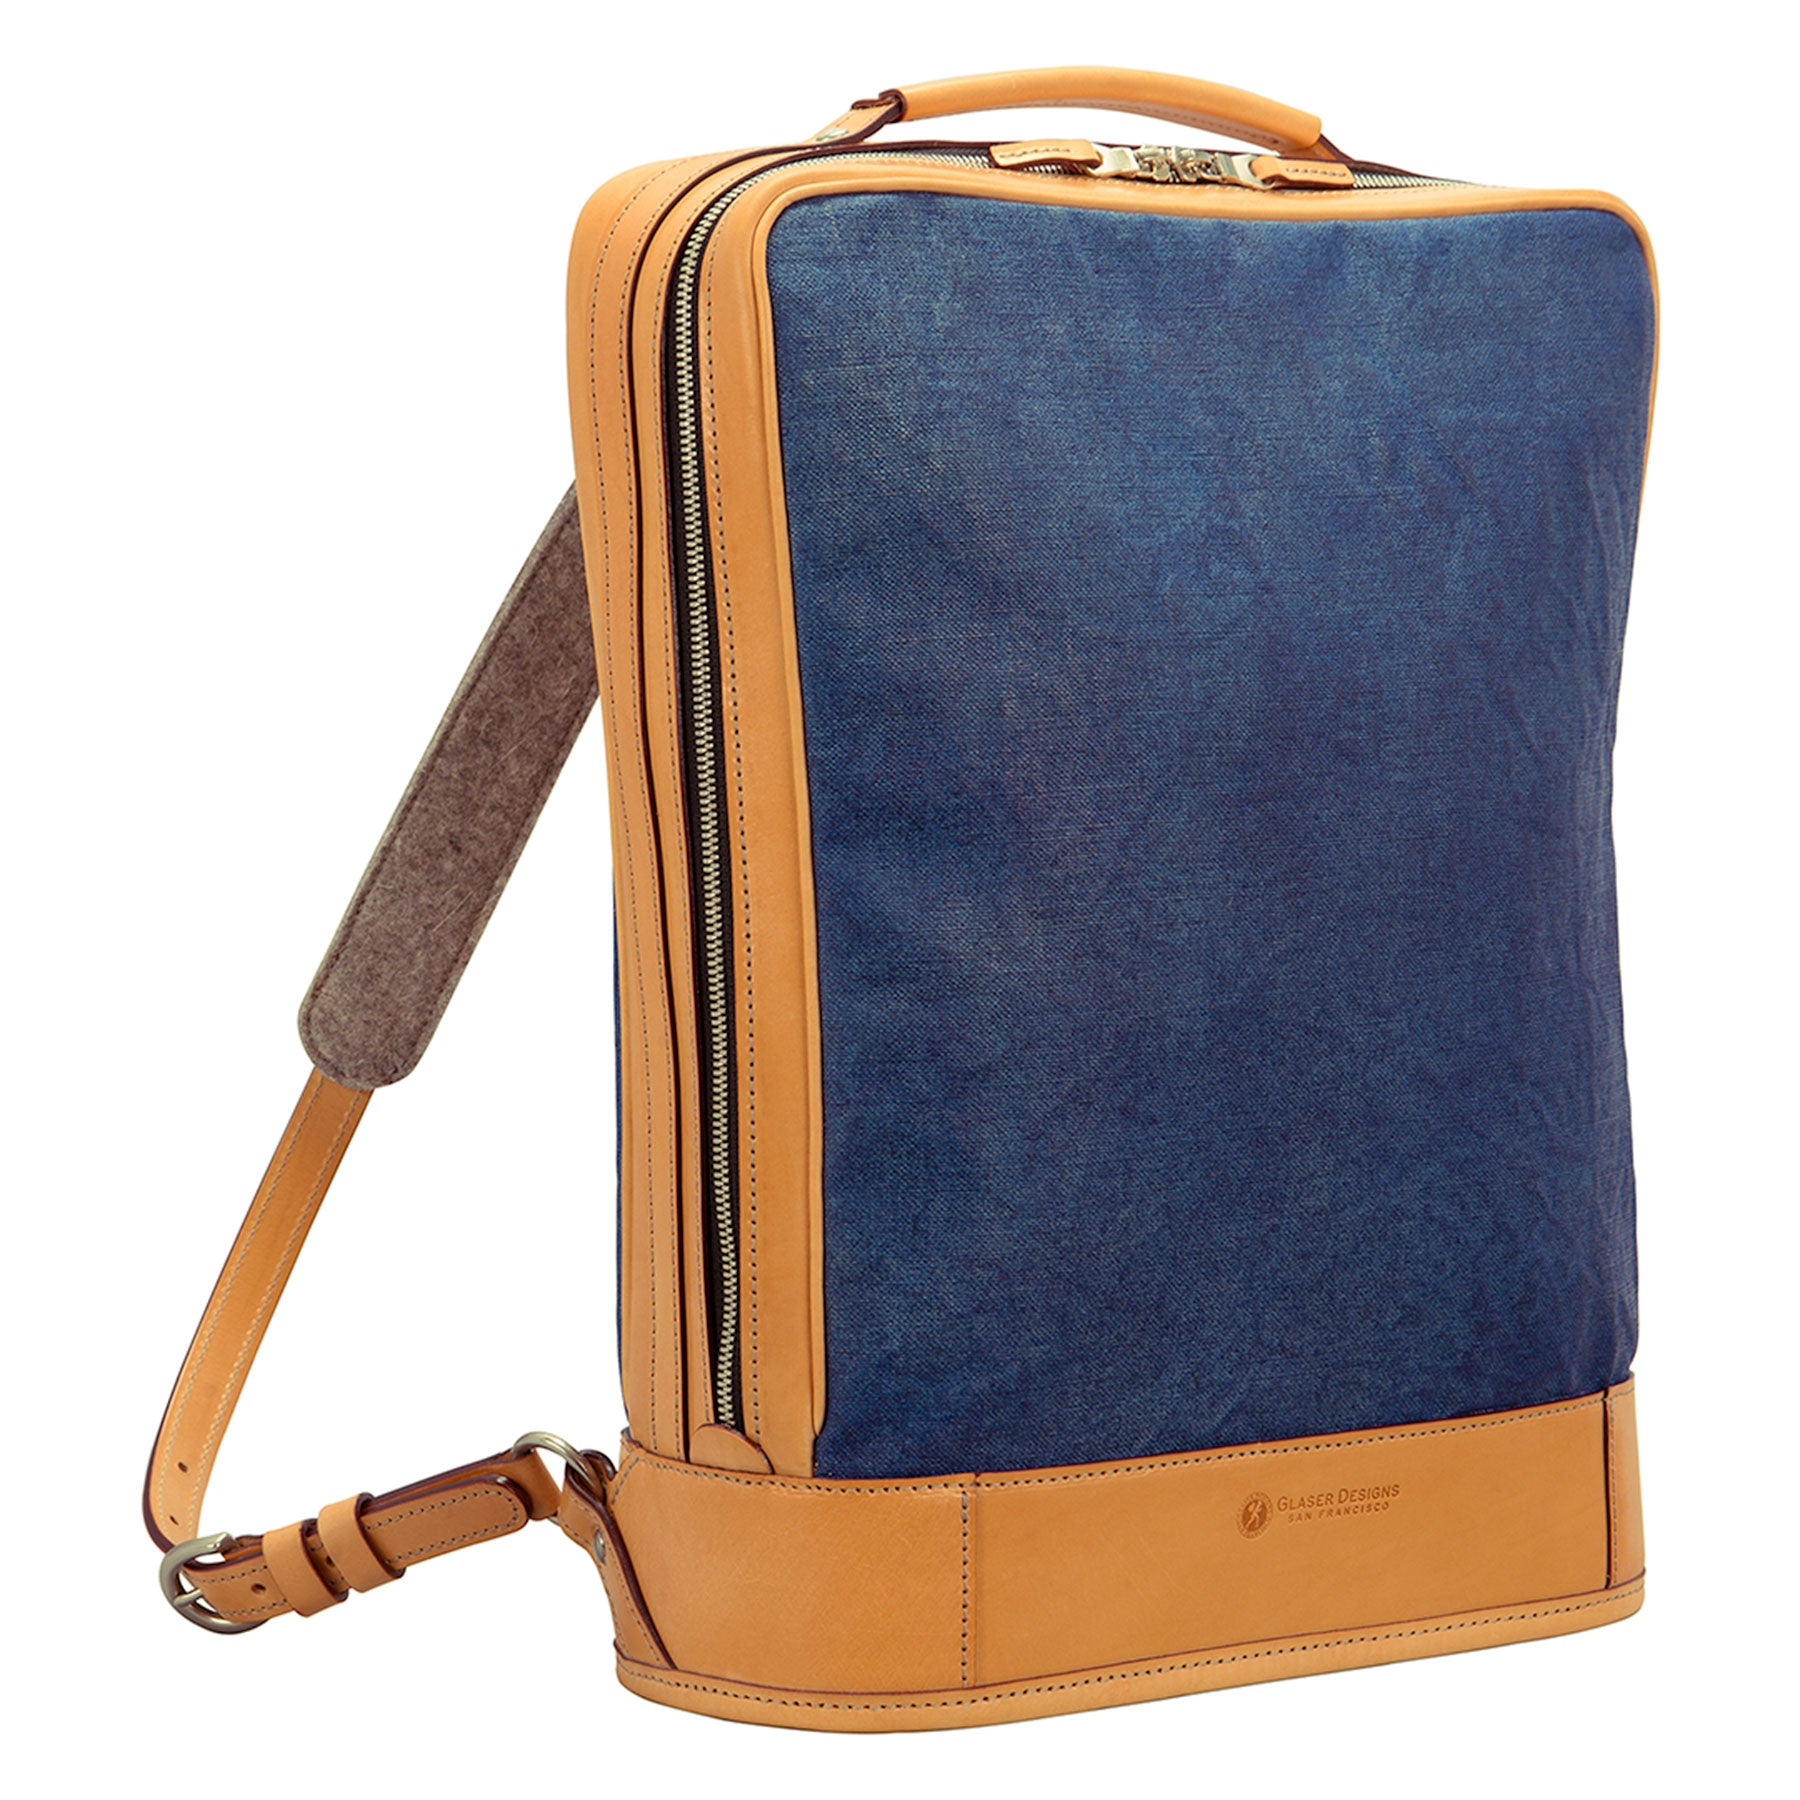 Business Backpack: Hand-Burnished Leather, Hand-Painted Linen